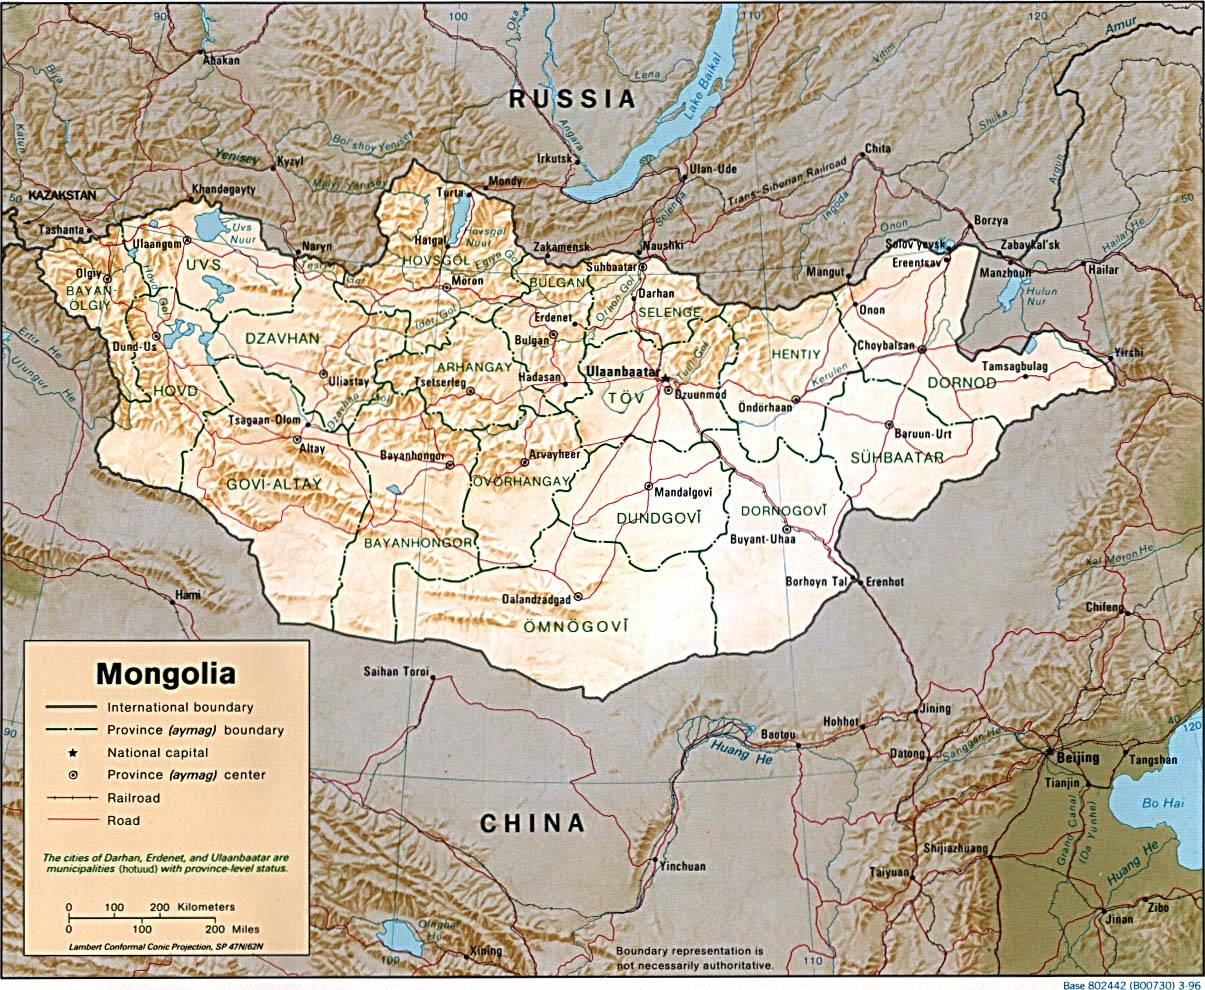 Mapa de Relieve Sombreado de Mongolia